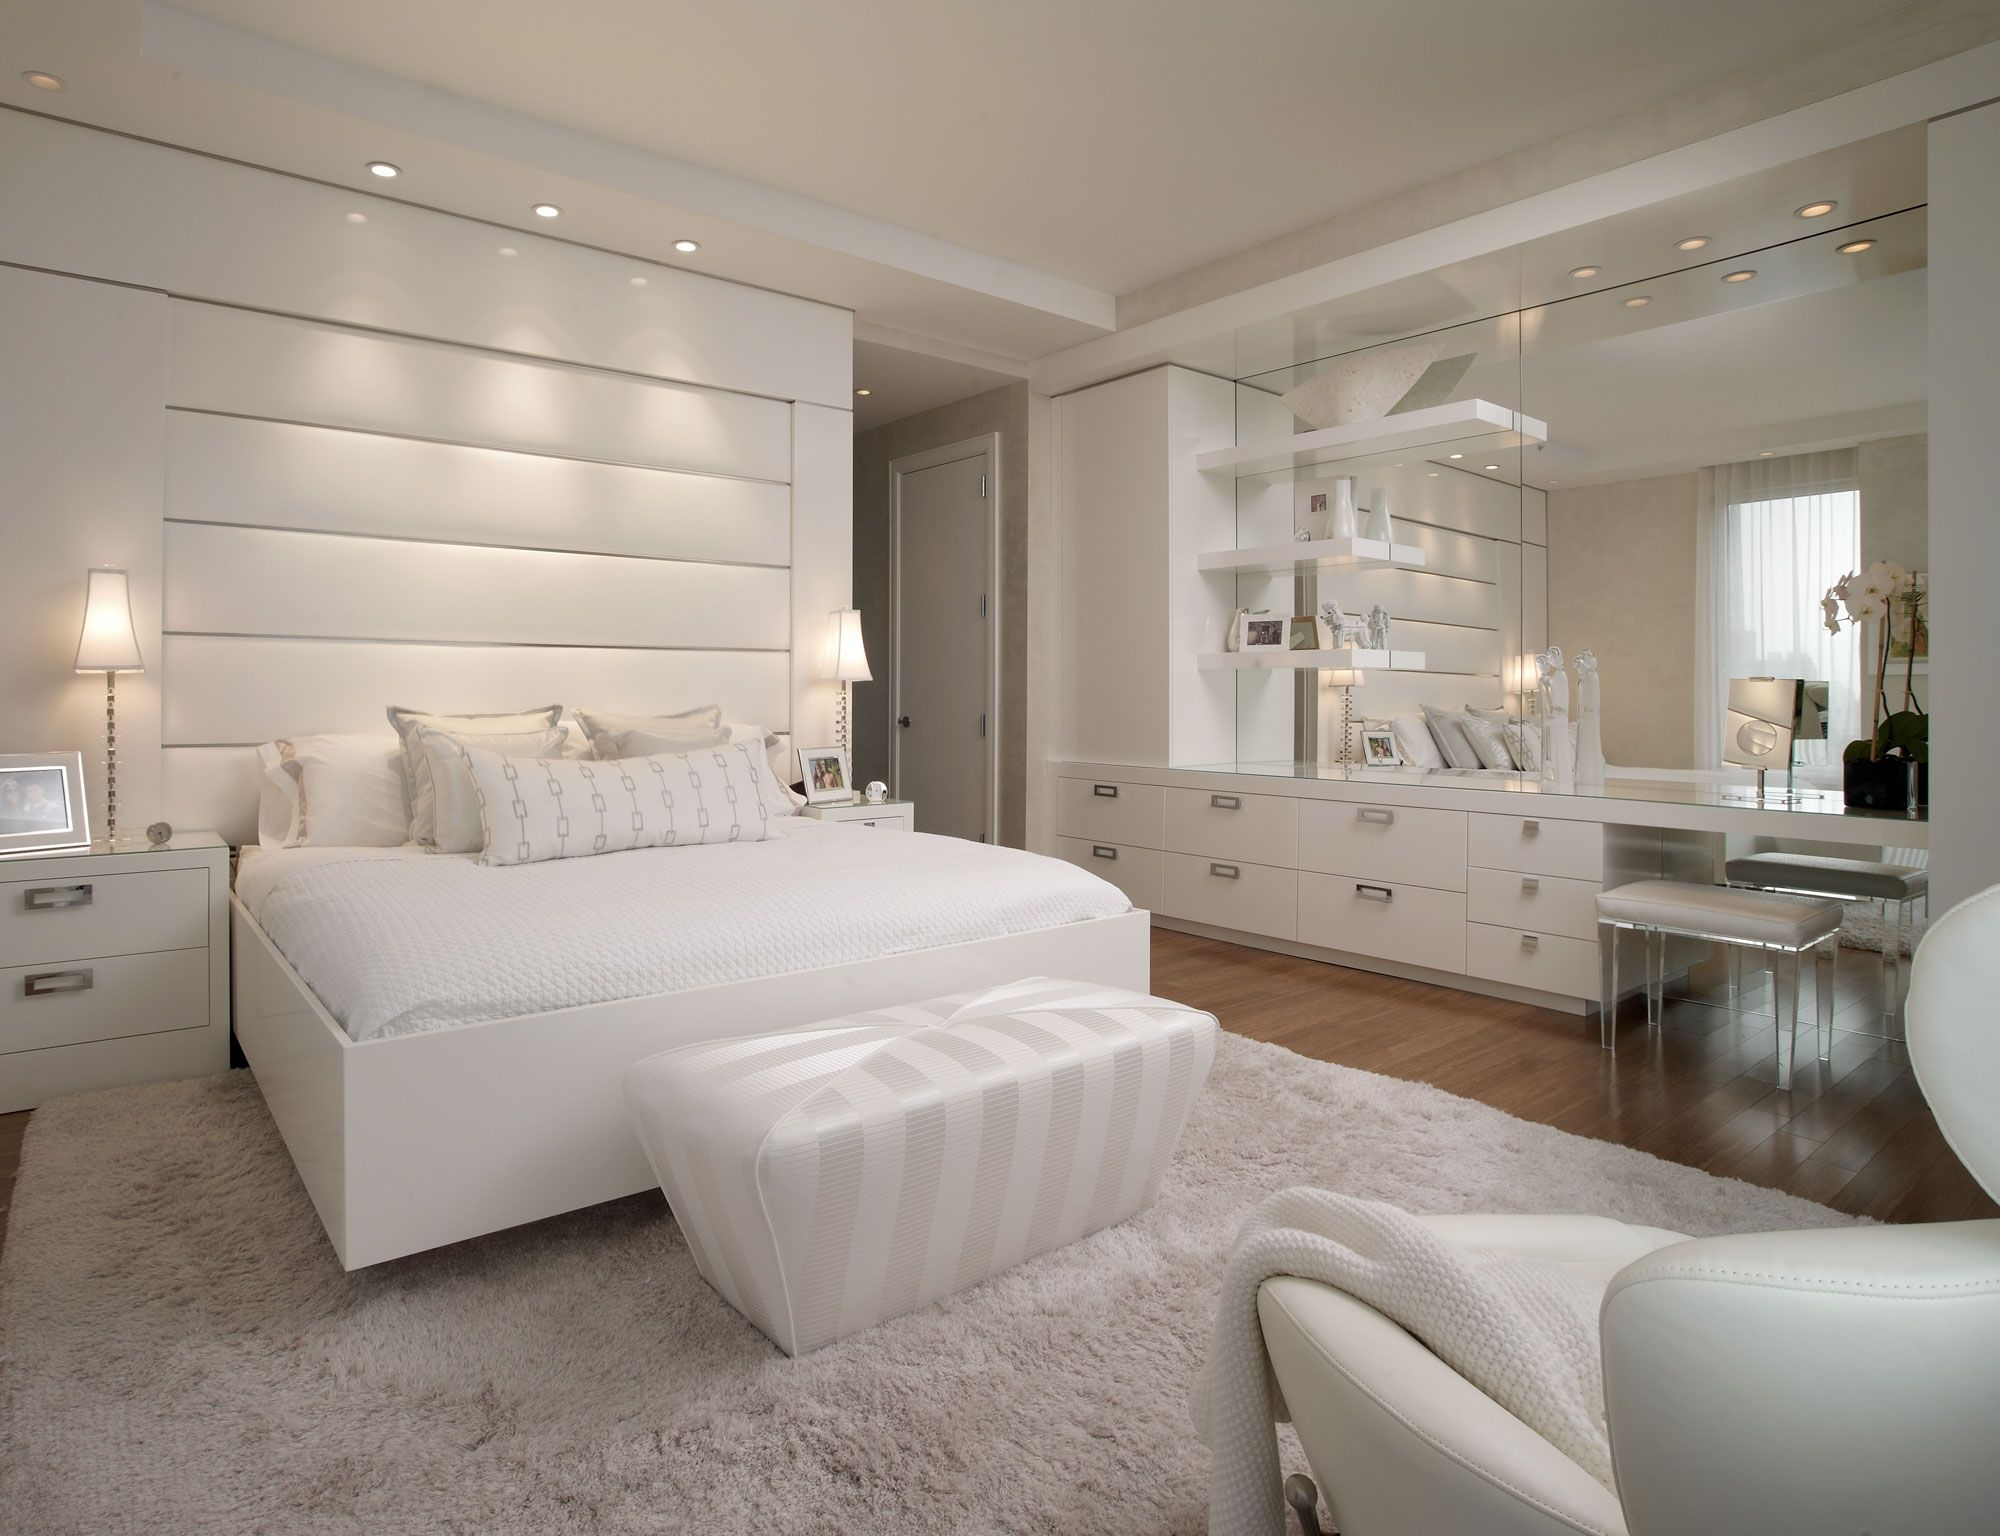 Best Luxury All White Bedroom Decorating Ideas Amazing 640 x 480